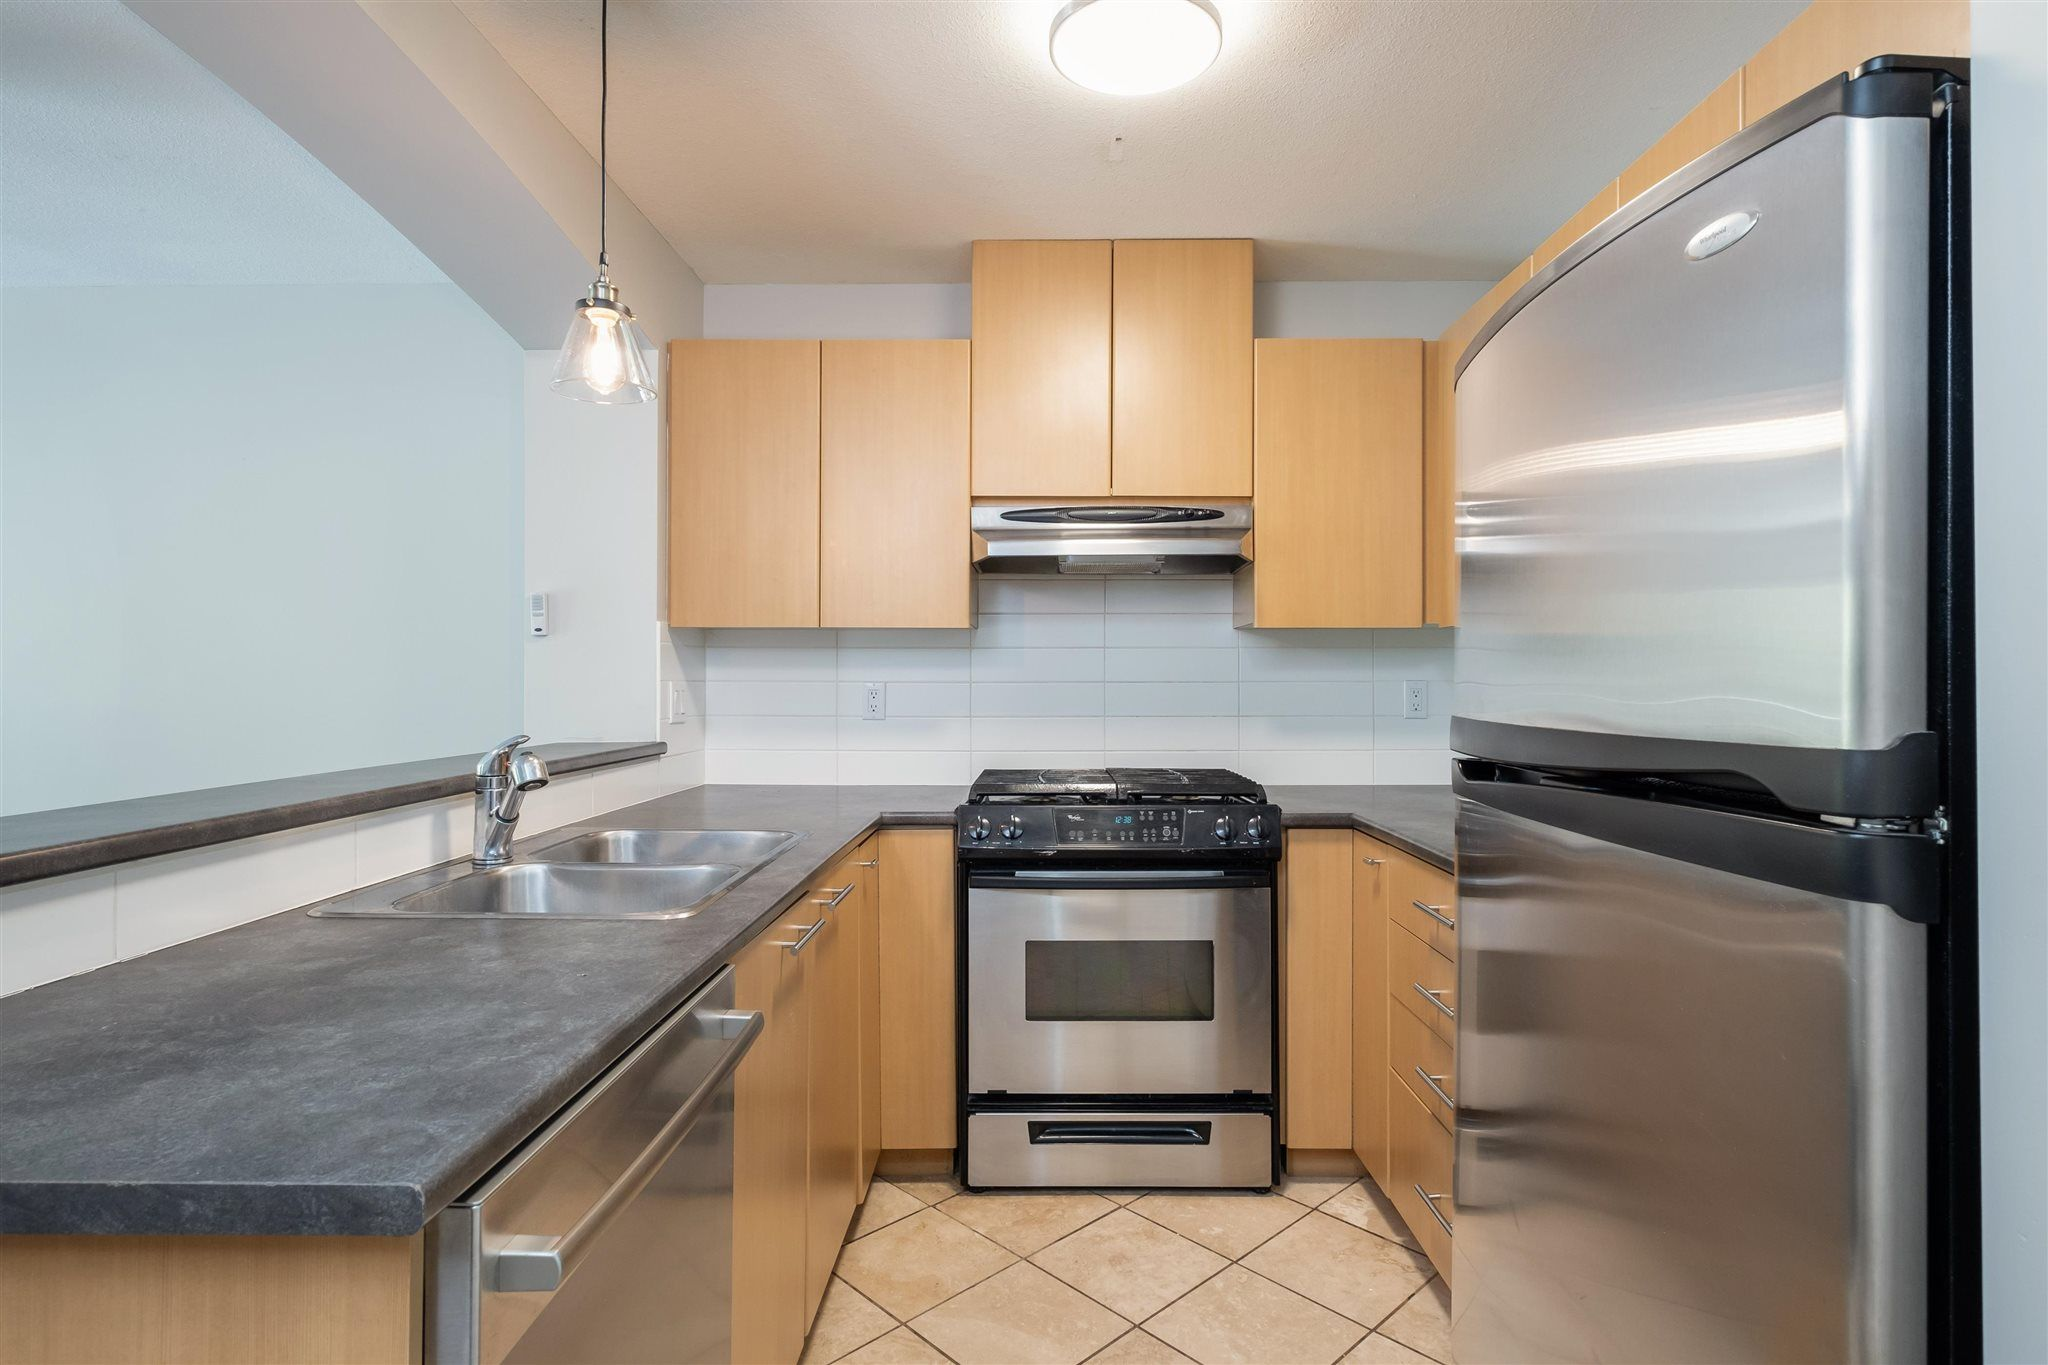 """Photo 9: Photos: 211 9339 UNIVERSITY Crescent in Burnaby: Simon Fraser Univer. Condo for sale in """"HARMONY"""" (Burnaby North)  : MLS®# R2597666"""